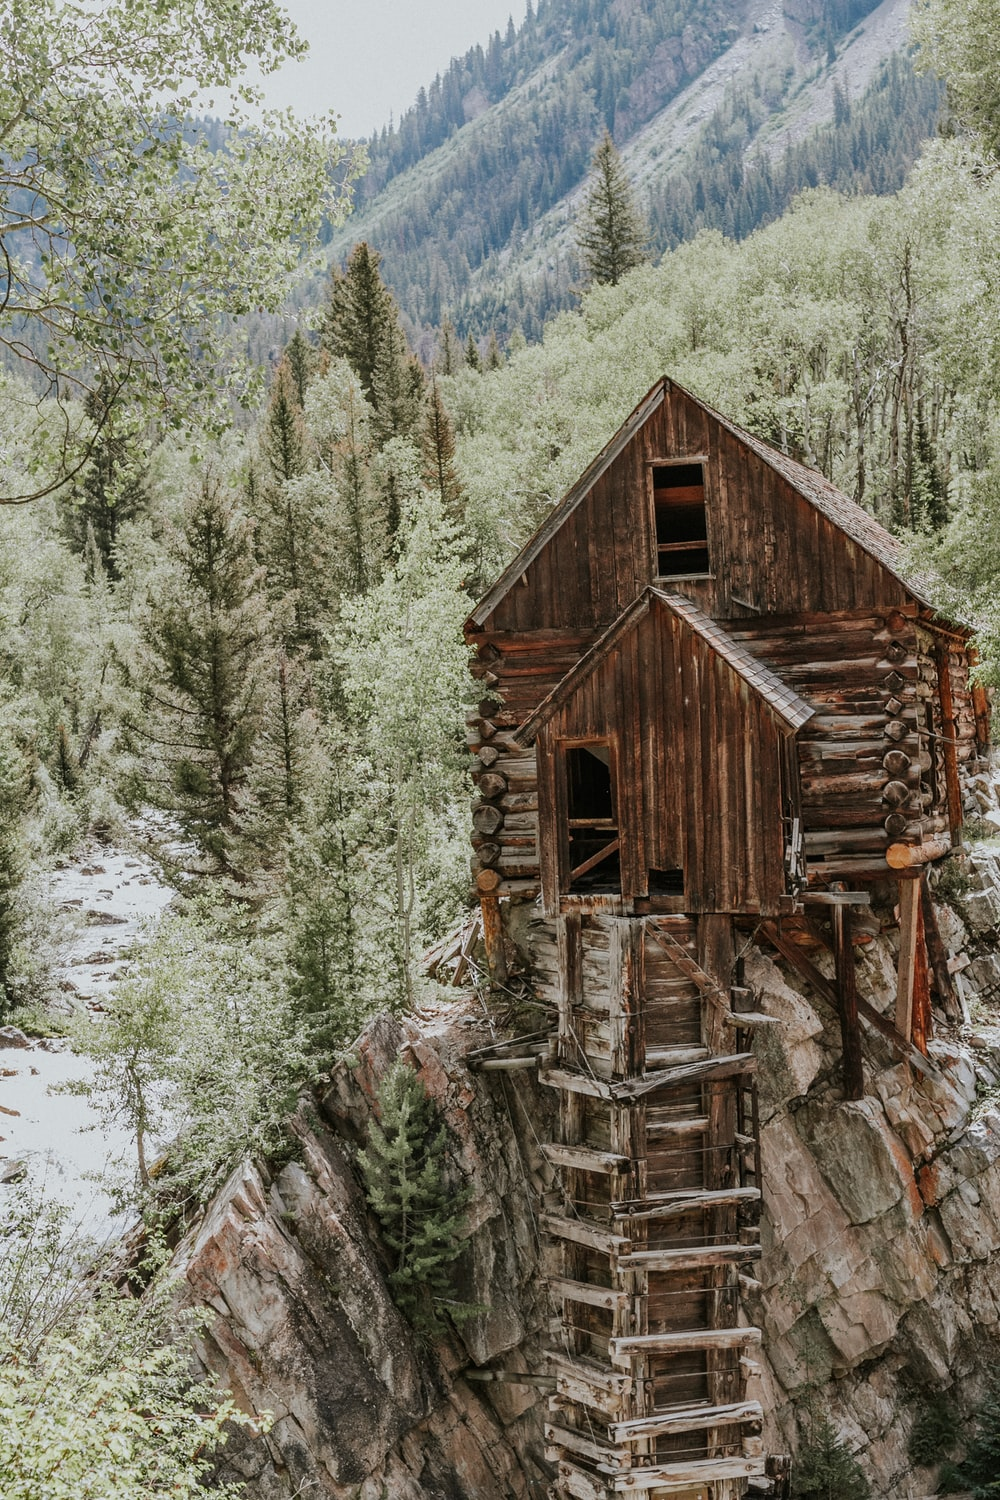 brown wooden house on rock formation near green trees during daytime